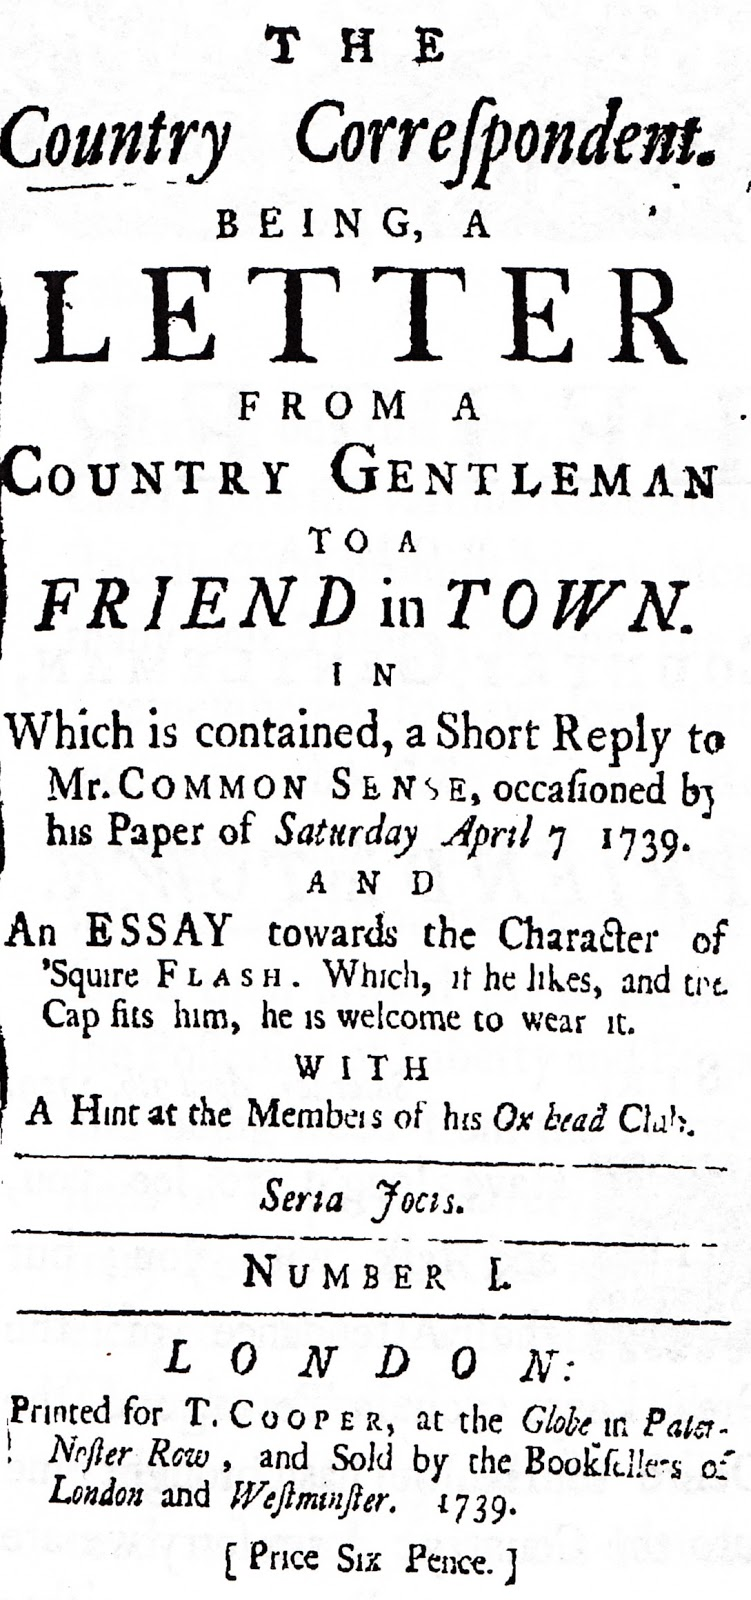 smollett writing for periodicals copy the lost works of smollett writing for periodicals 1733 40 copy the lost works of tobias smollett and the war of the satirists